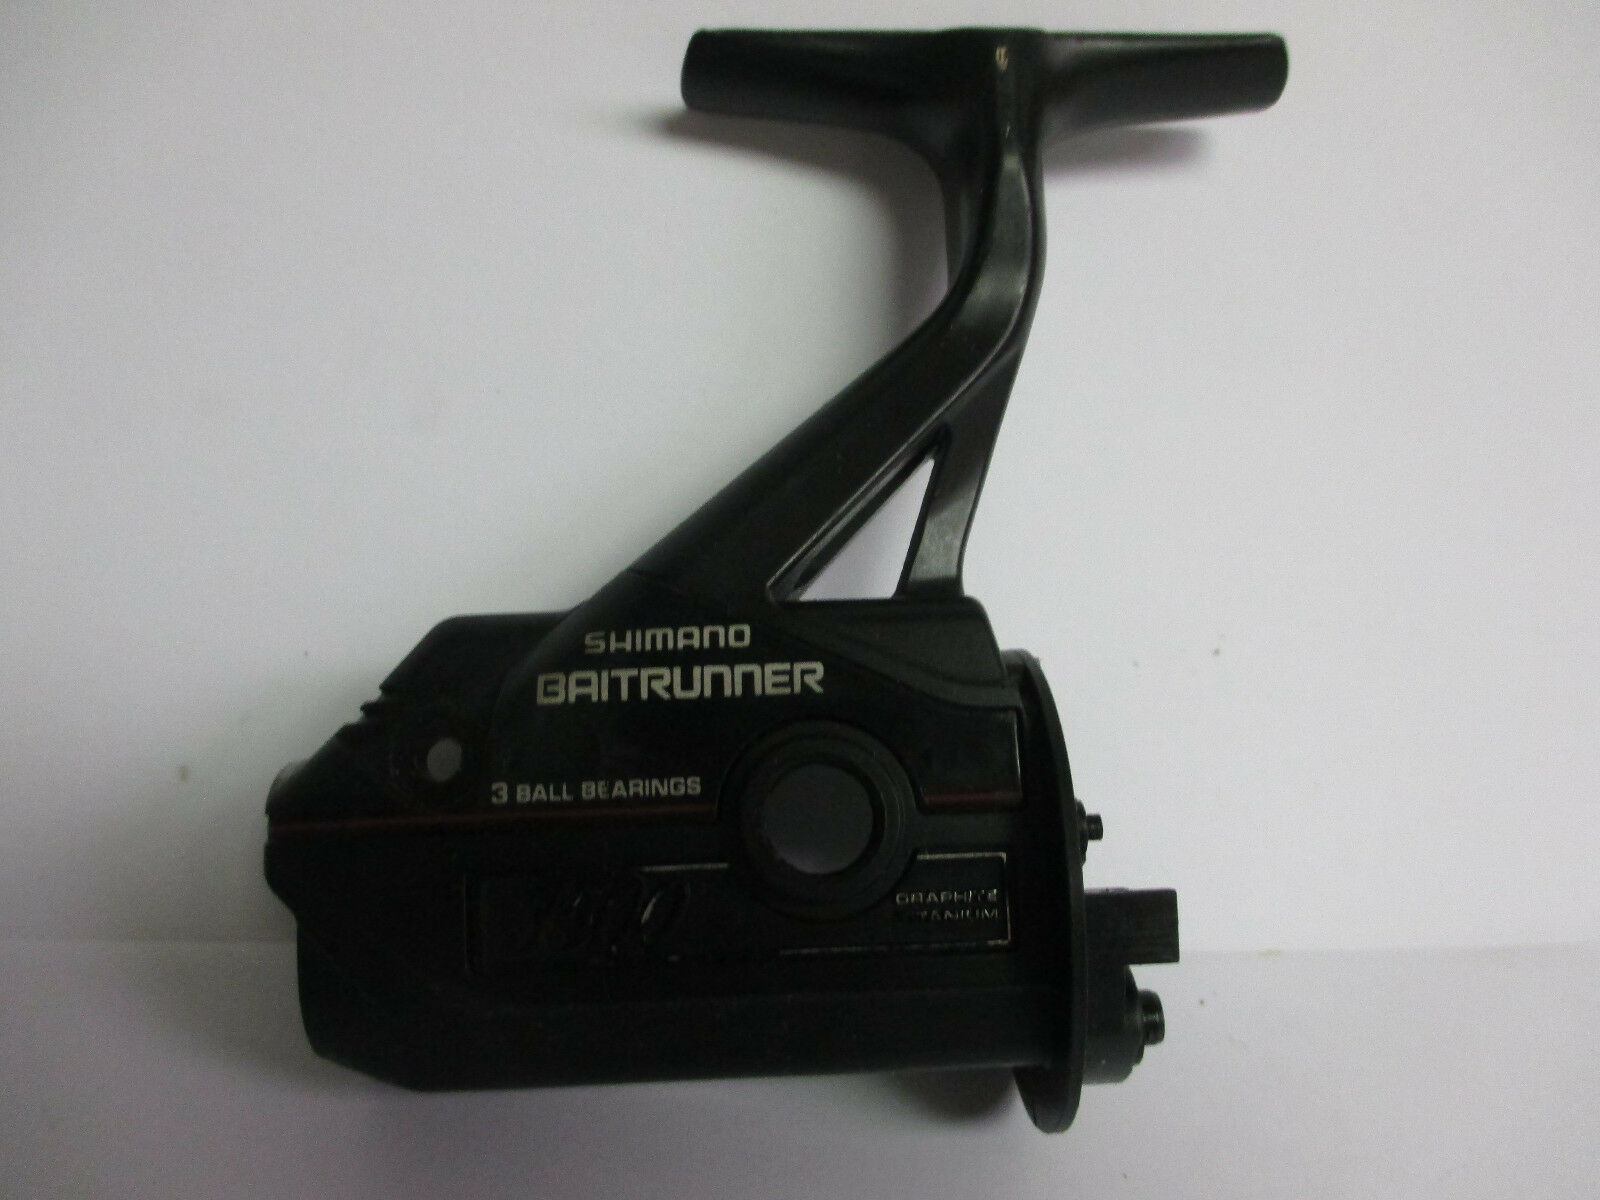 USED SHIMANO SPINNING REEL PART - Baitrunner 3500  - Body Housing   3500 D e3e606